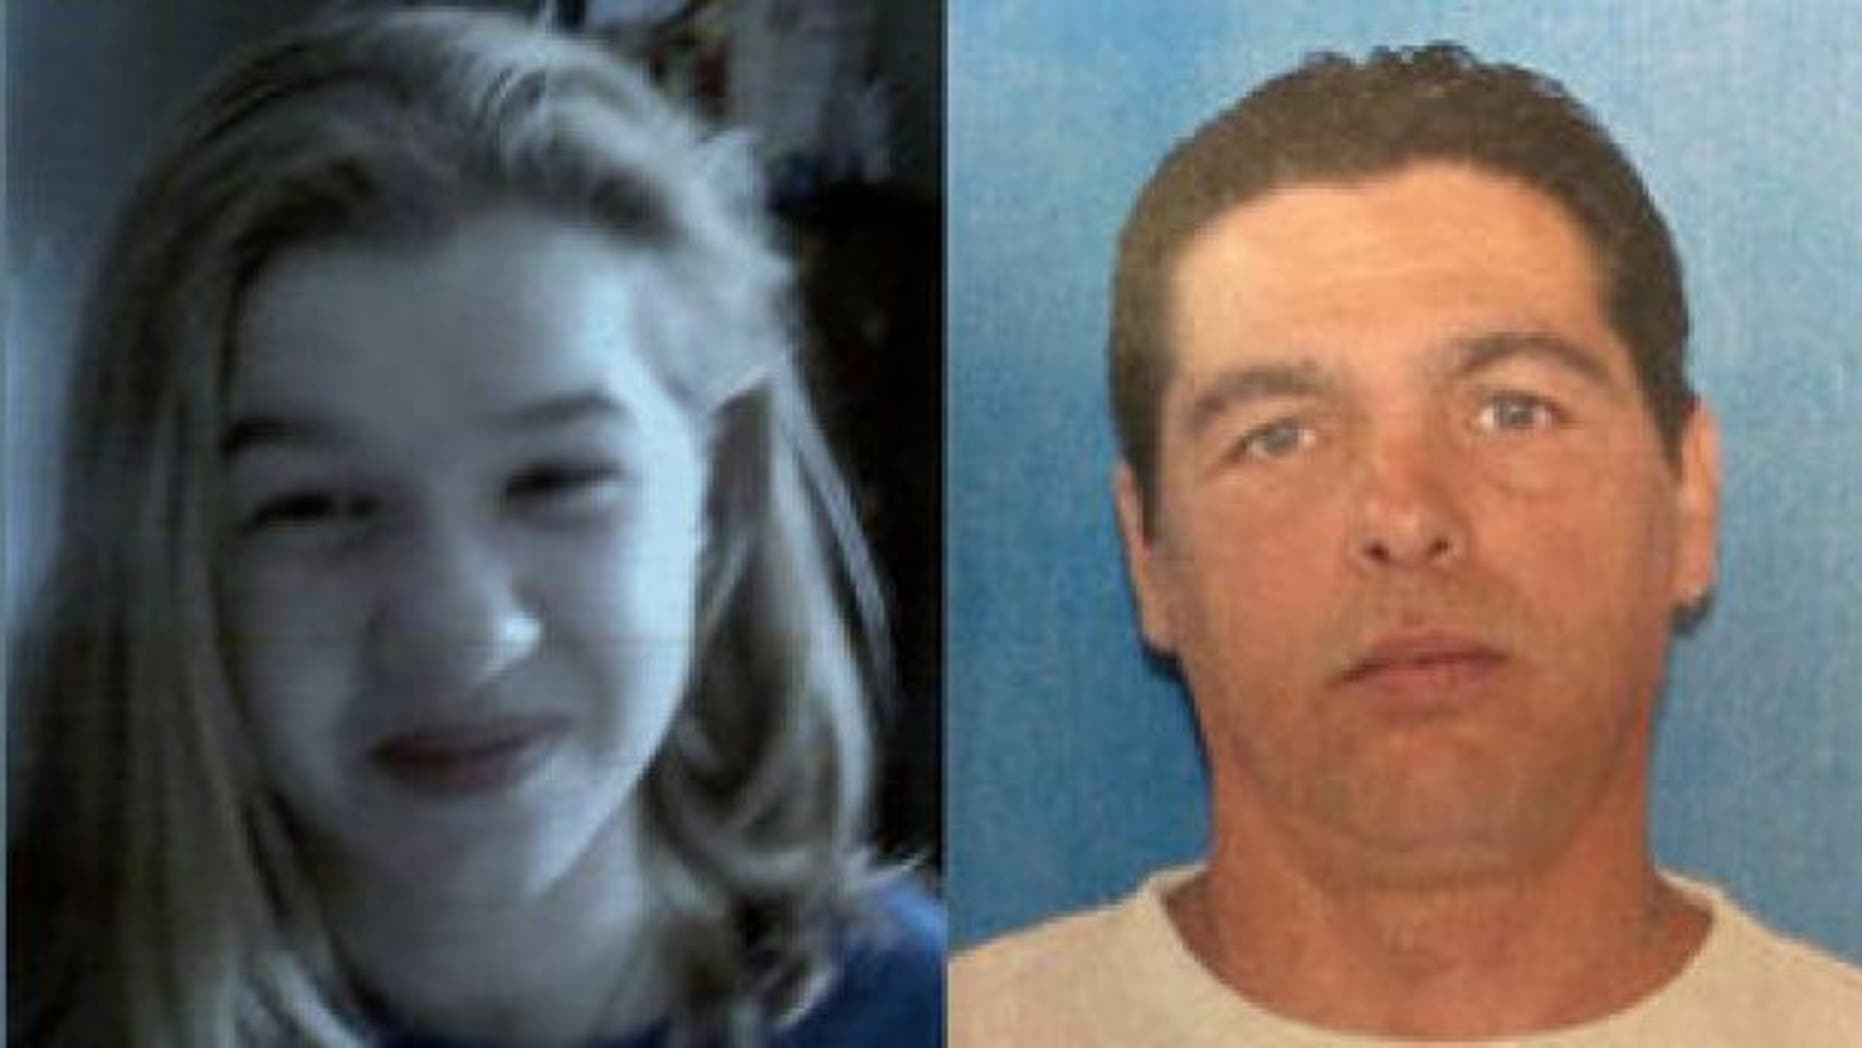 Elizabeth Rex, a 14-year-old developmentally disabled girl from Texas, was kidnapped by family friend Randy Johnson, 51, police said. The girl was later found safe in a trailer park near Mexico.